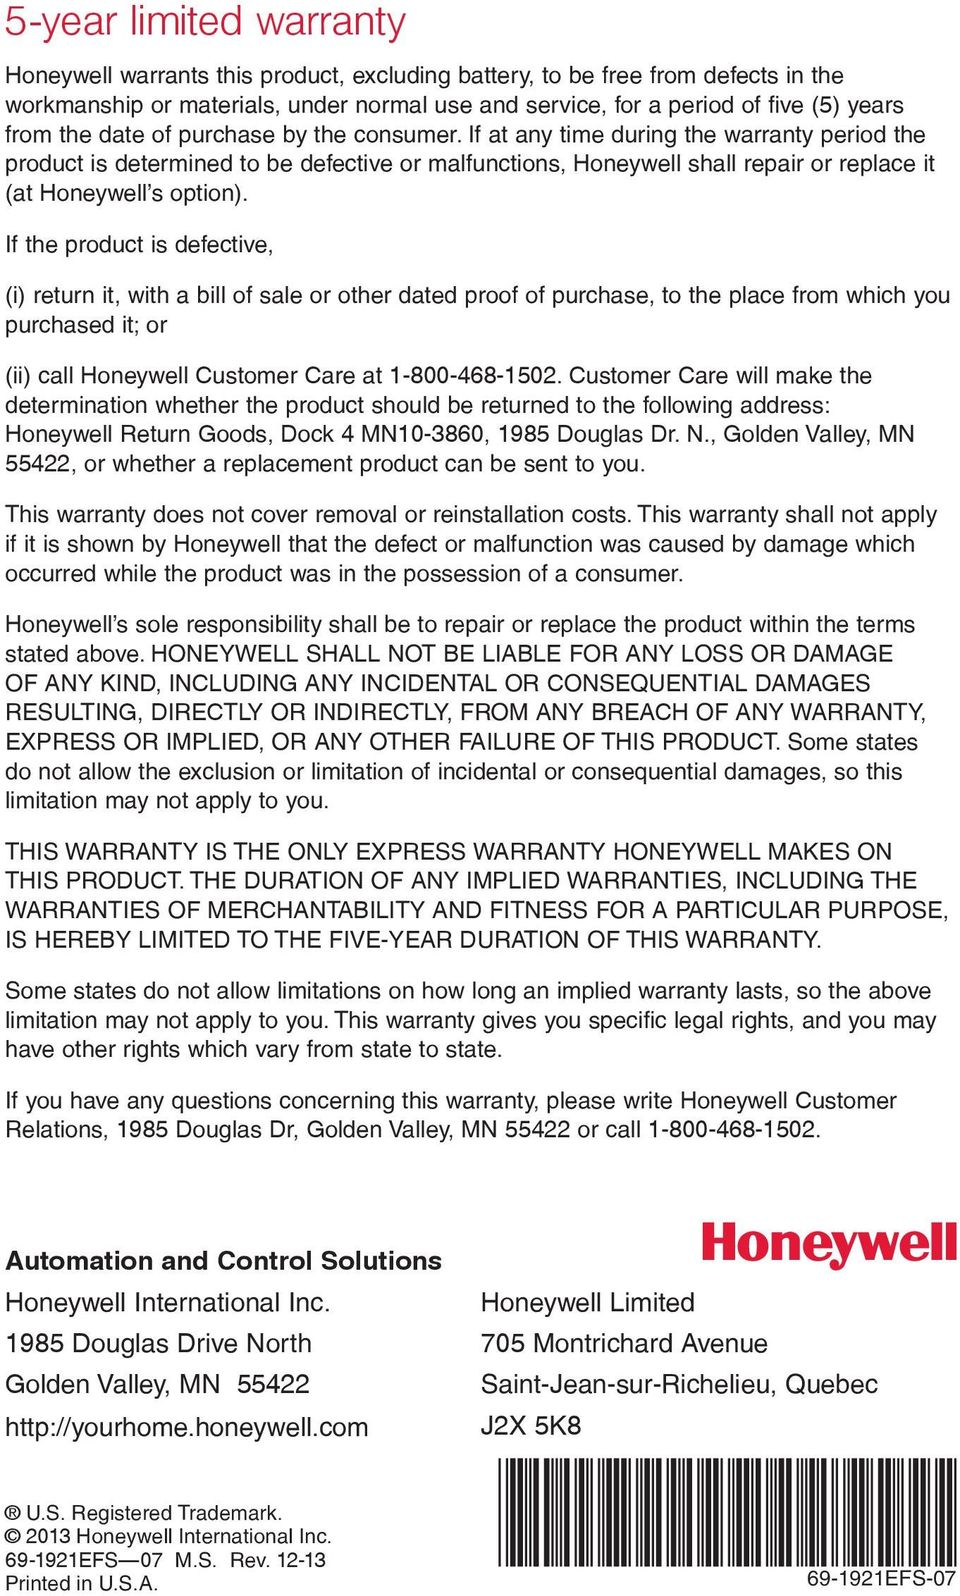 If the product is defective, (i) return it, with a bill of sale or other dated proof of purchase, to the place from which you purchased it; or (ii) call Honeywell Customer Care at 1-800-468-1502.